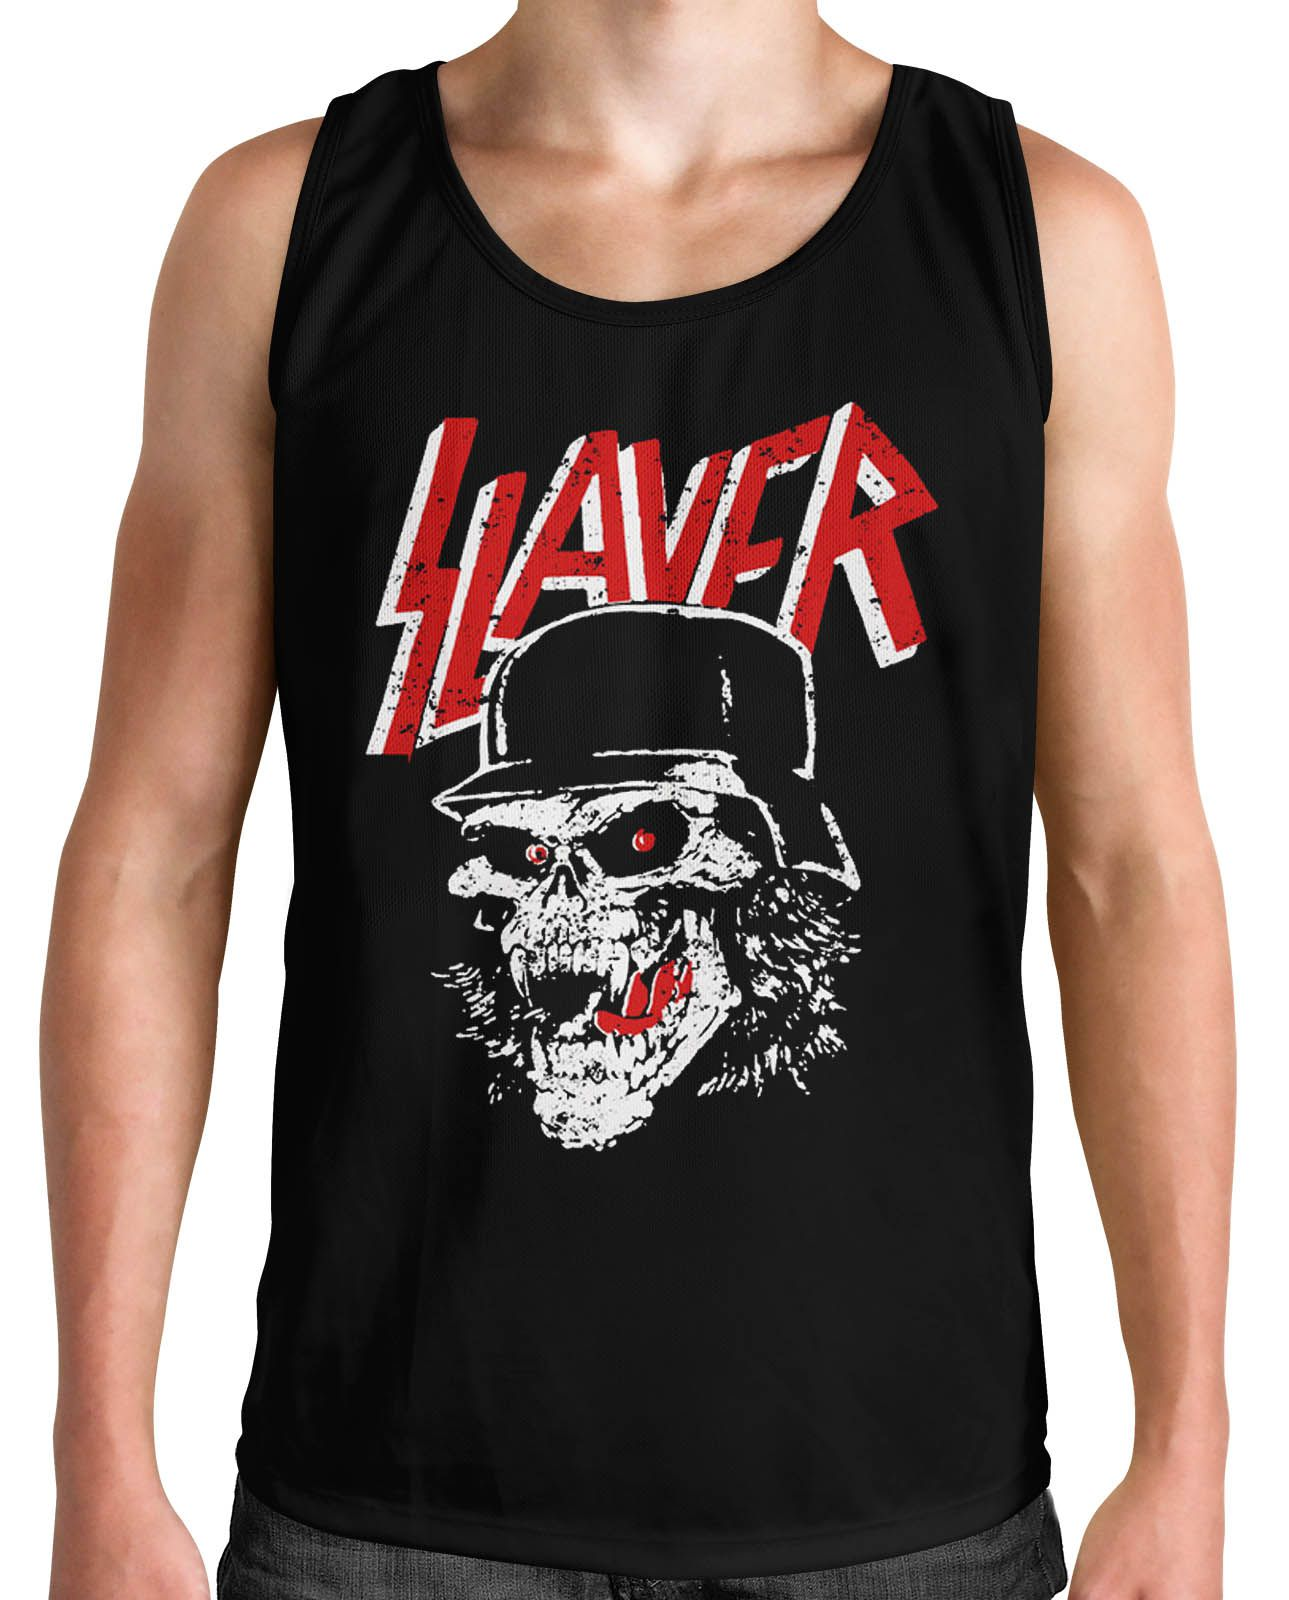 Regata Slayer - Preto  - HShop